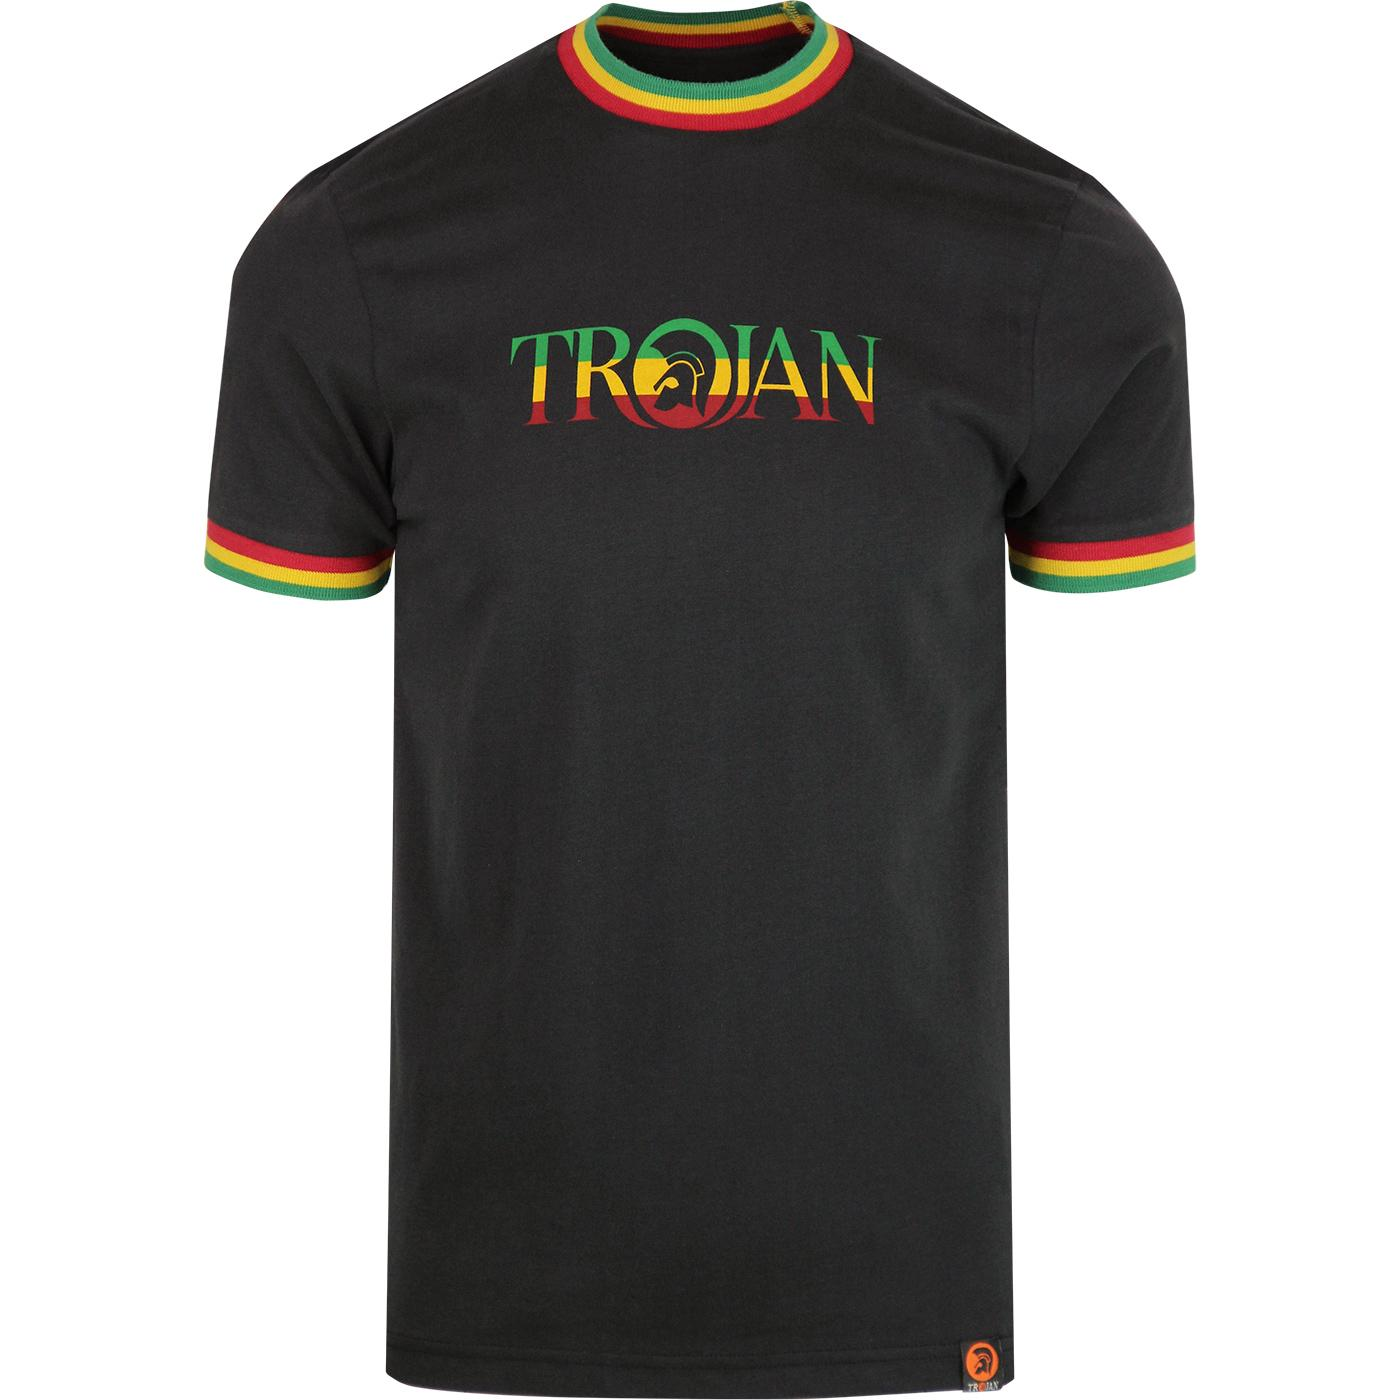 TROJAN RECORDS Retro Rasta Signature Ringer Tee